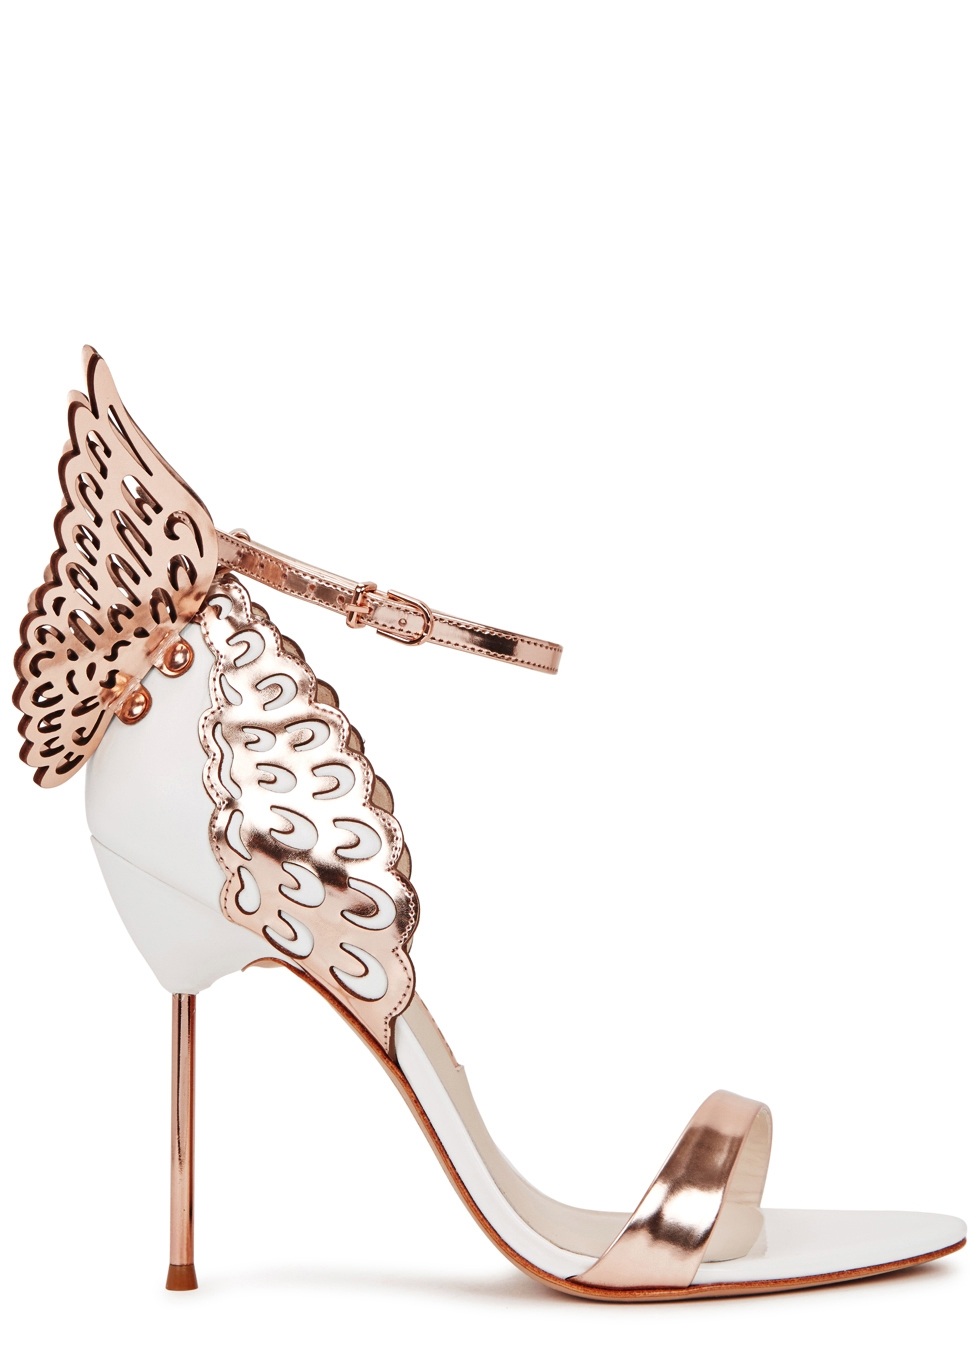 Evangeline 100 winged leather sandals